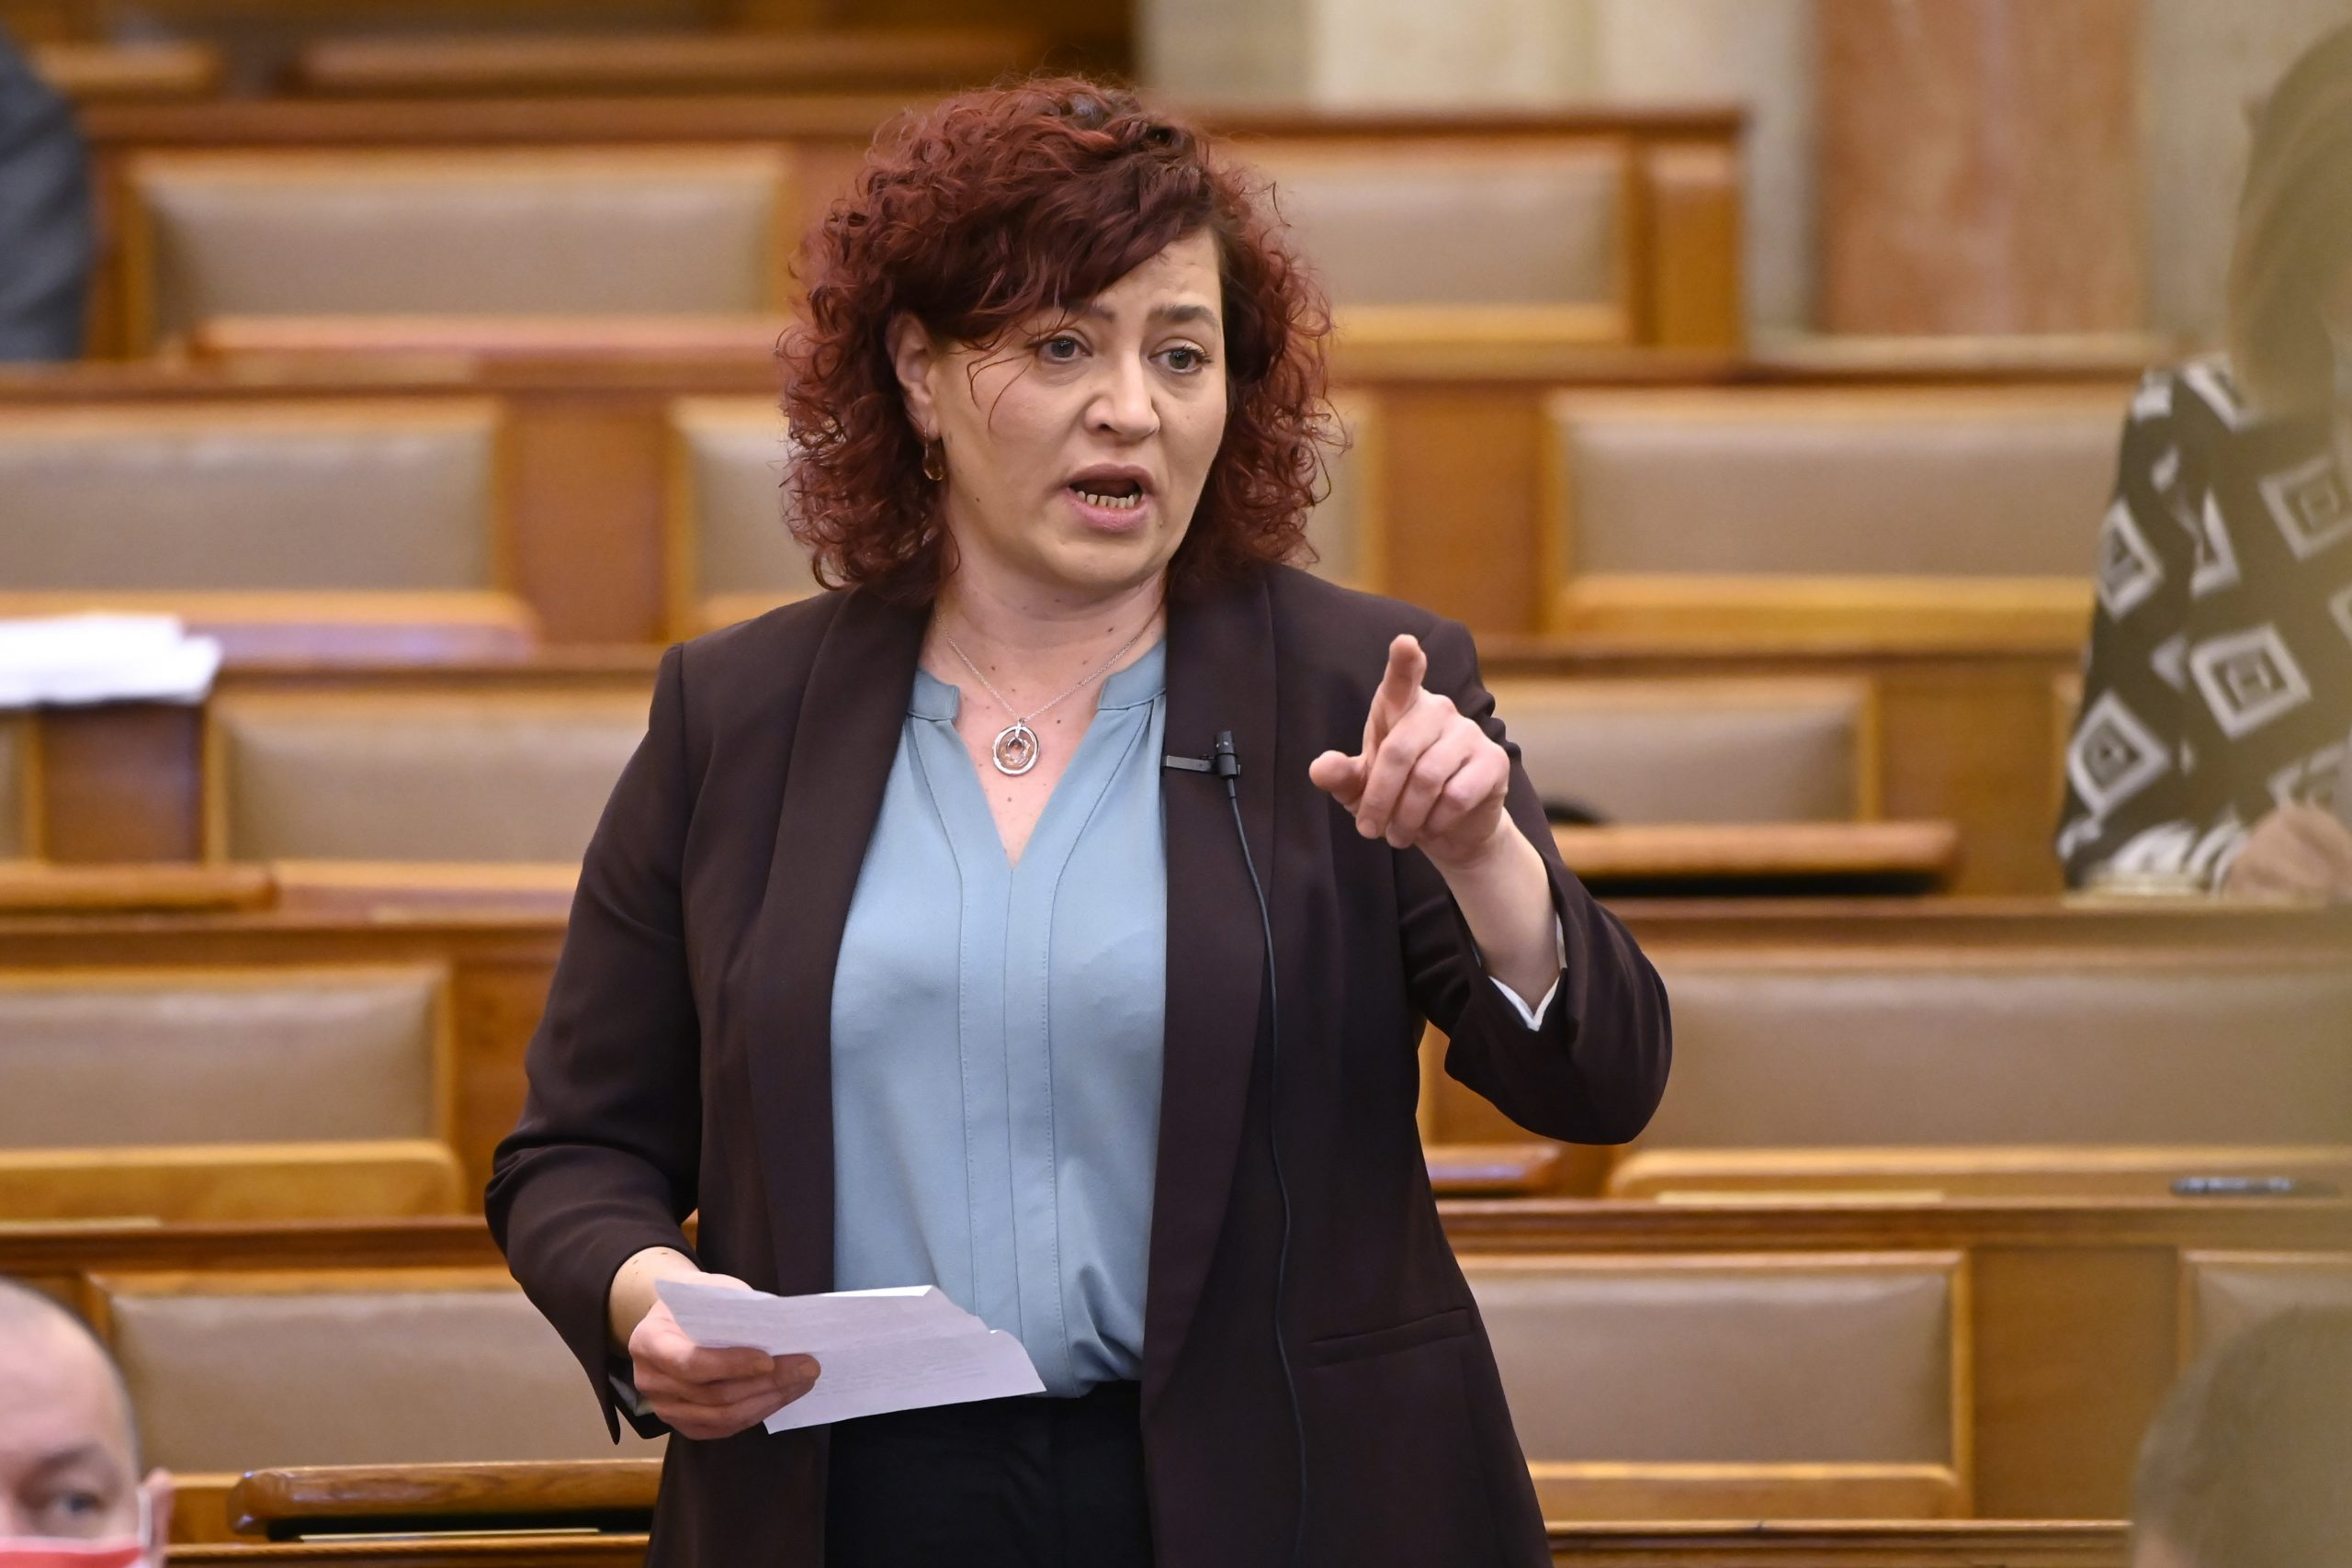 Opposition Parties Initiate Alternative Anti-Pedophilia Law Proposals